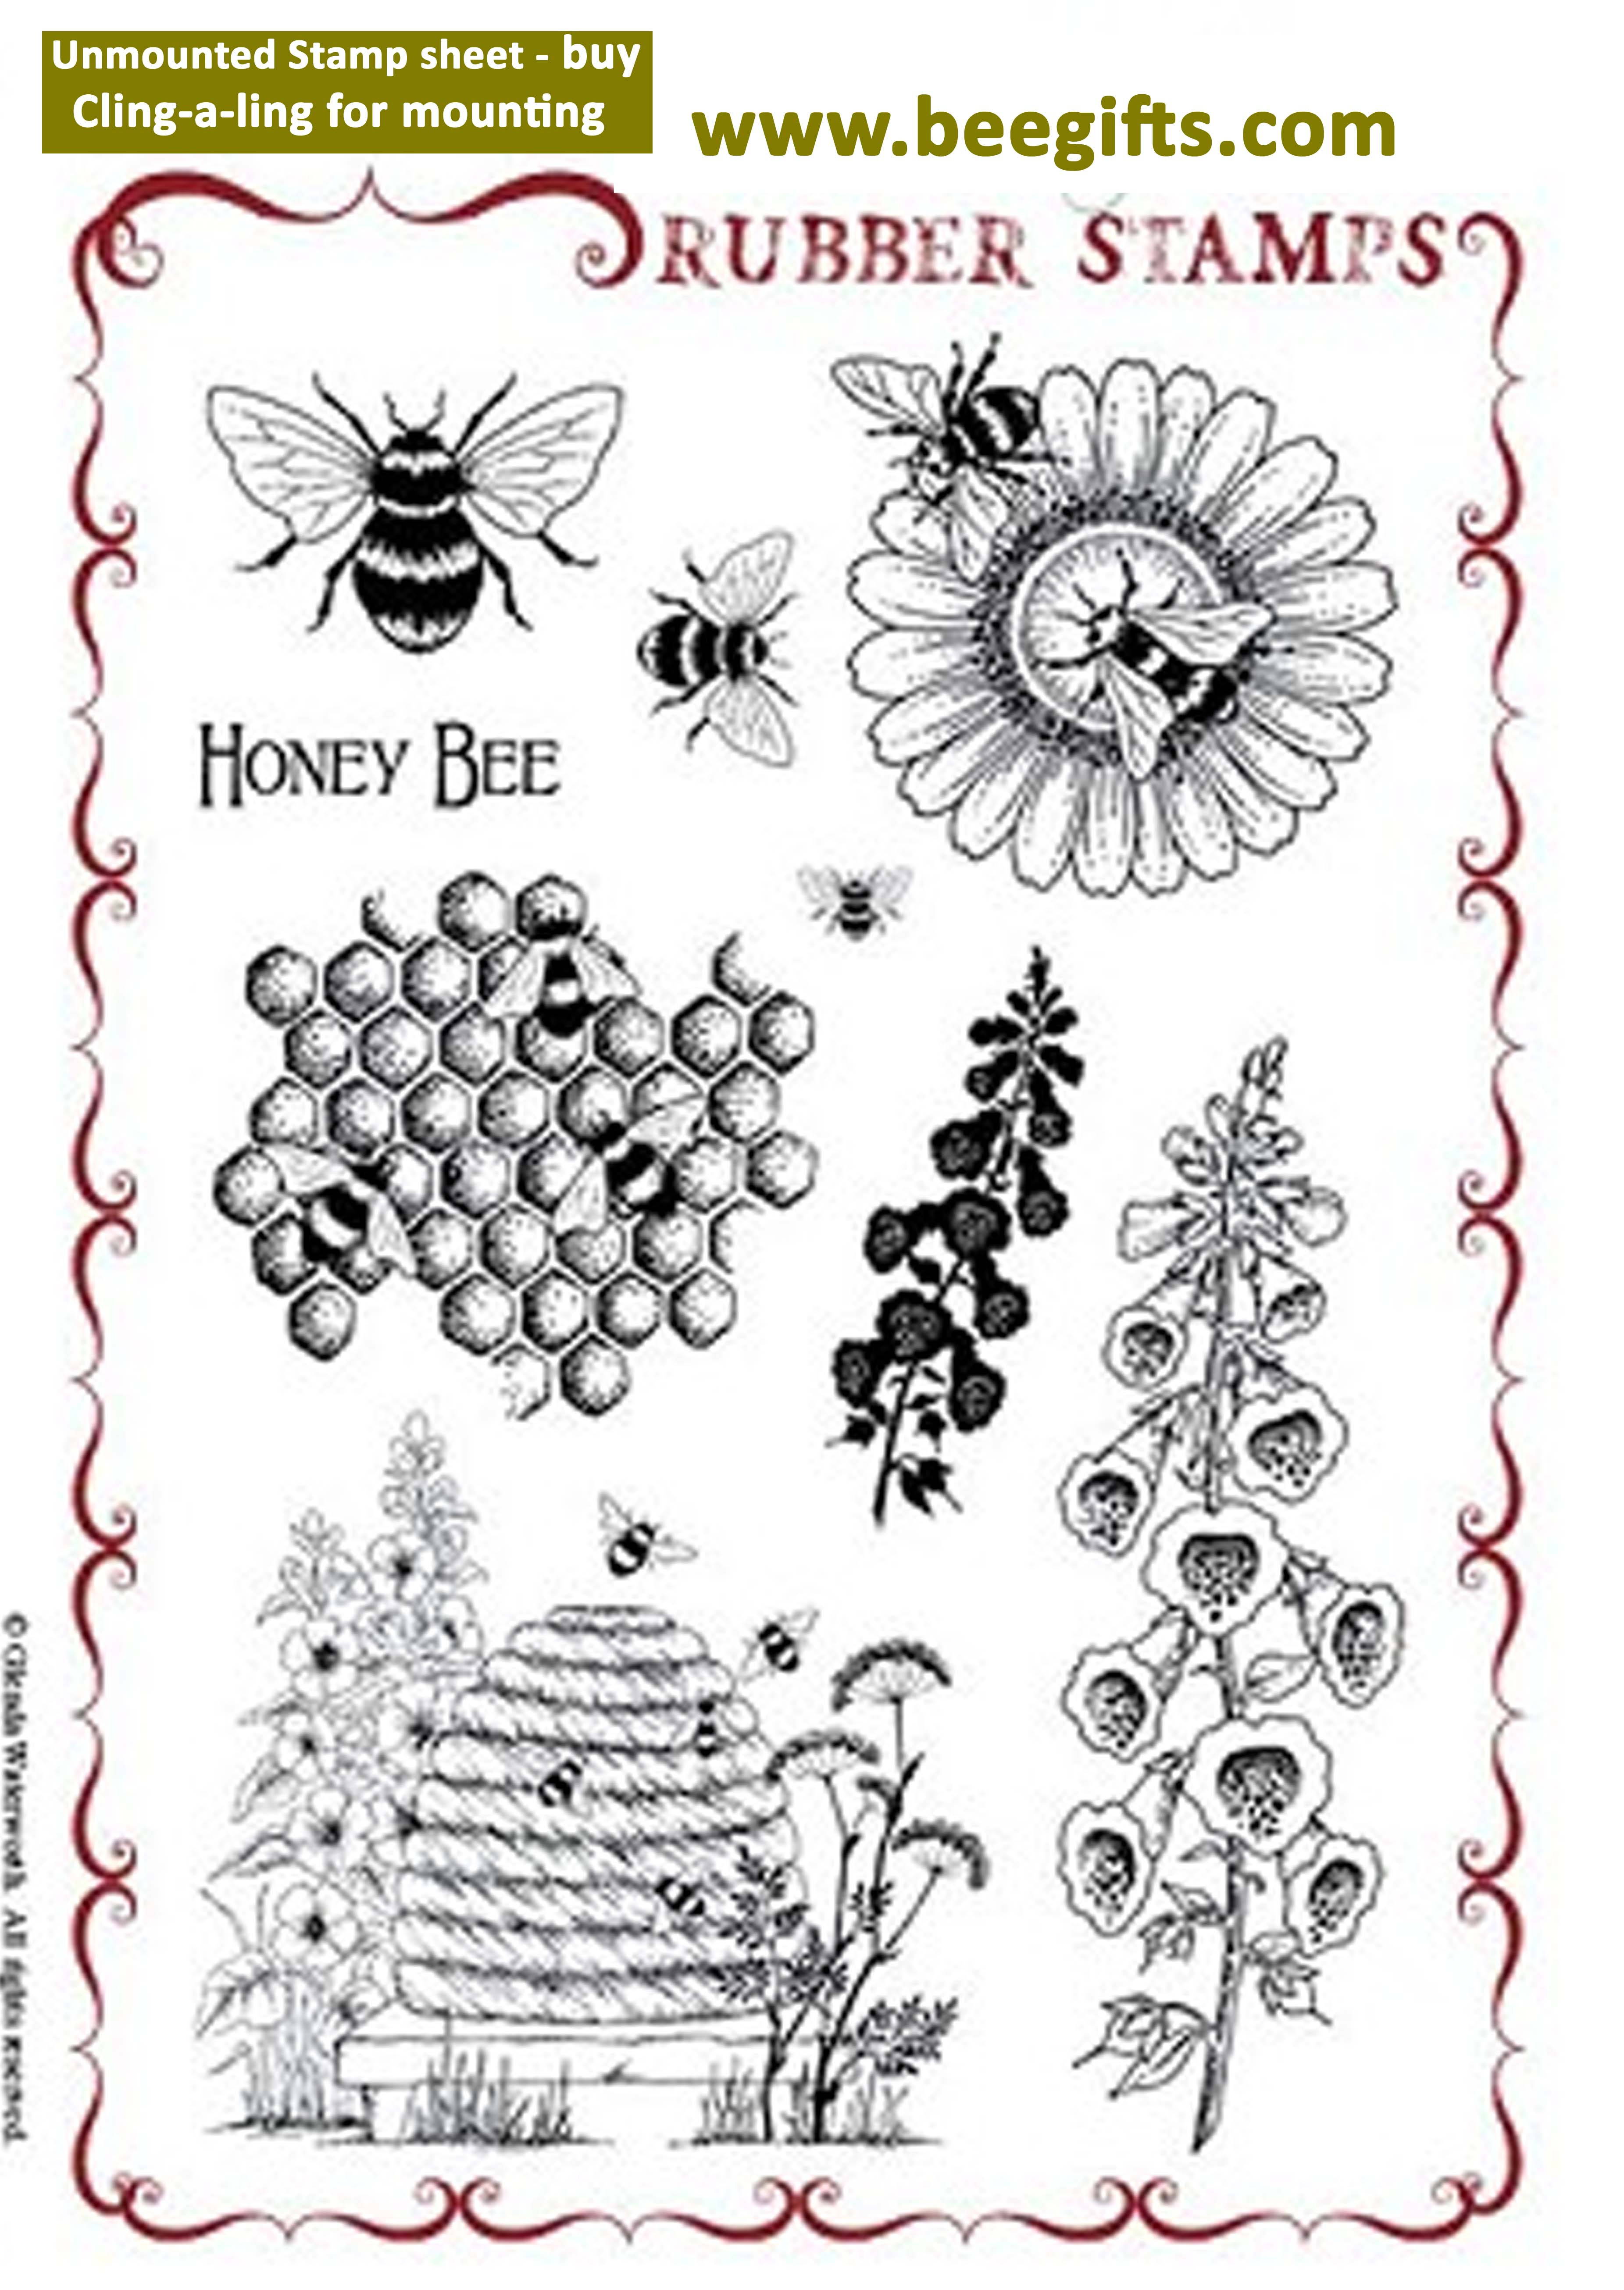 Honey Bee Rubber Stamps A5 Page With Cling A Ling